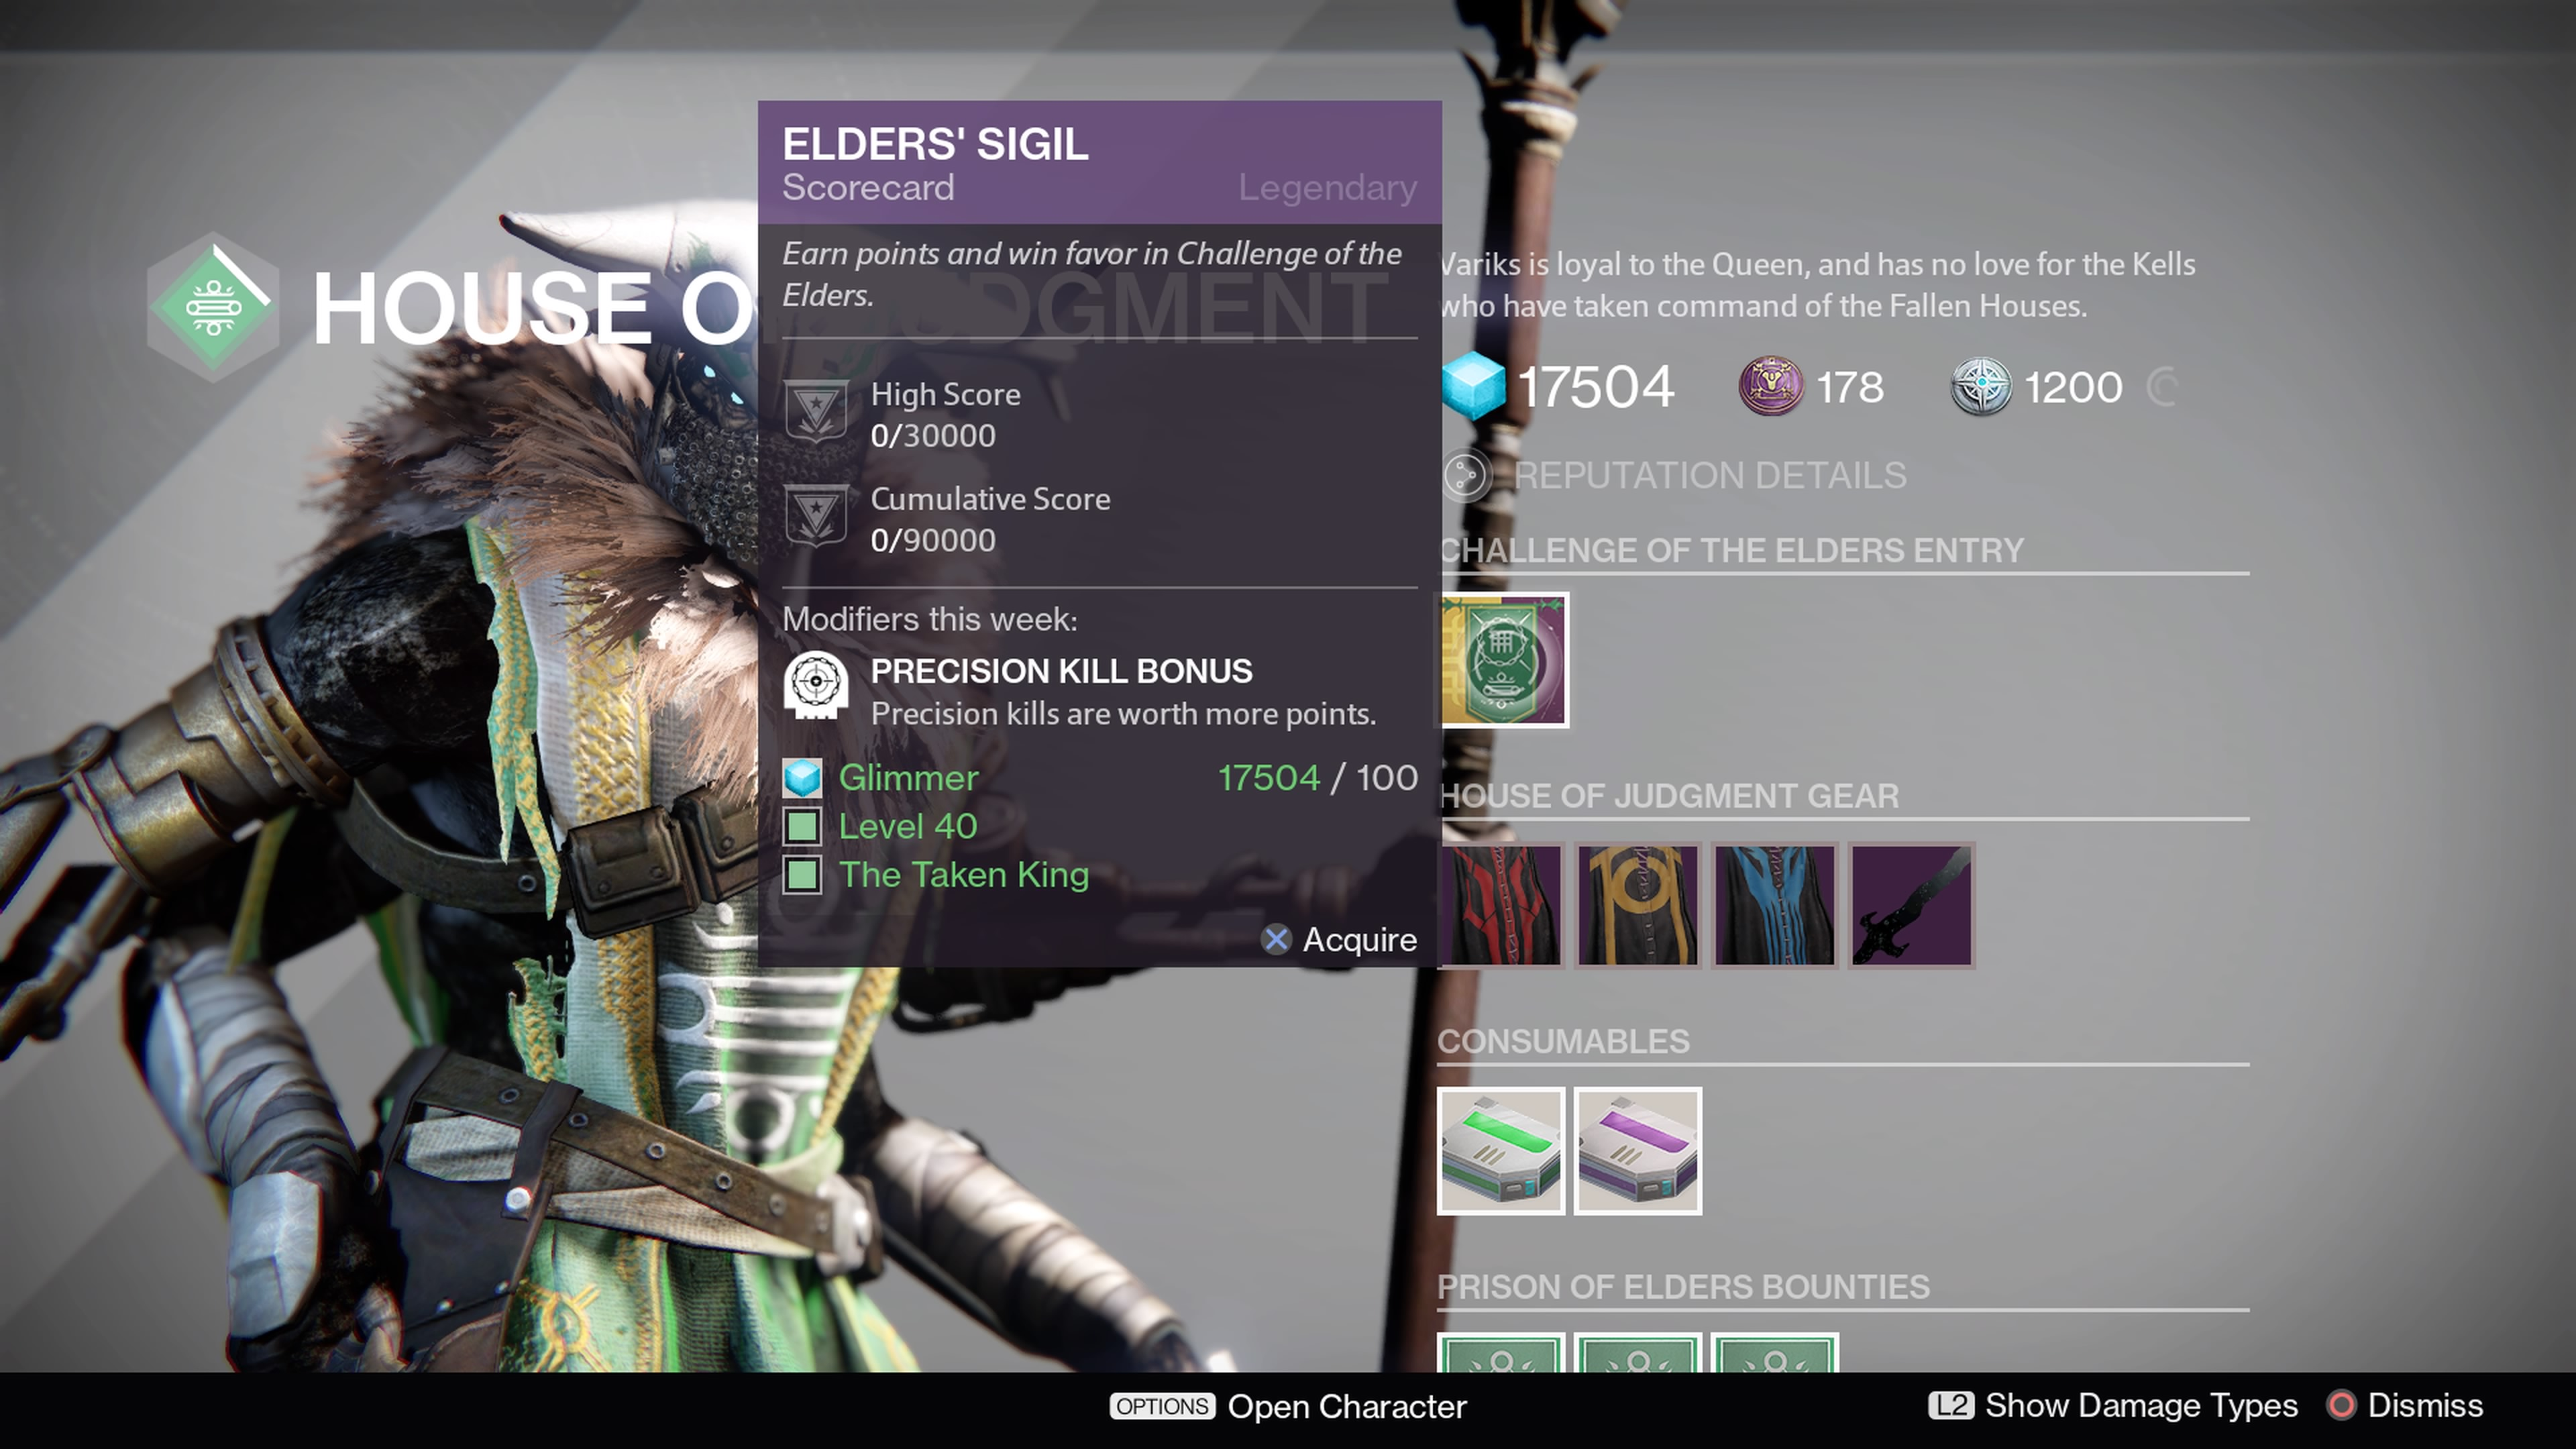 Grab the Elders' Sigil and complete the the Challenge of Elders